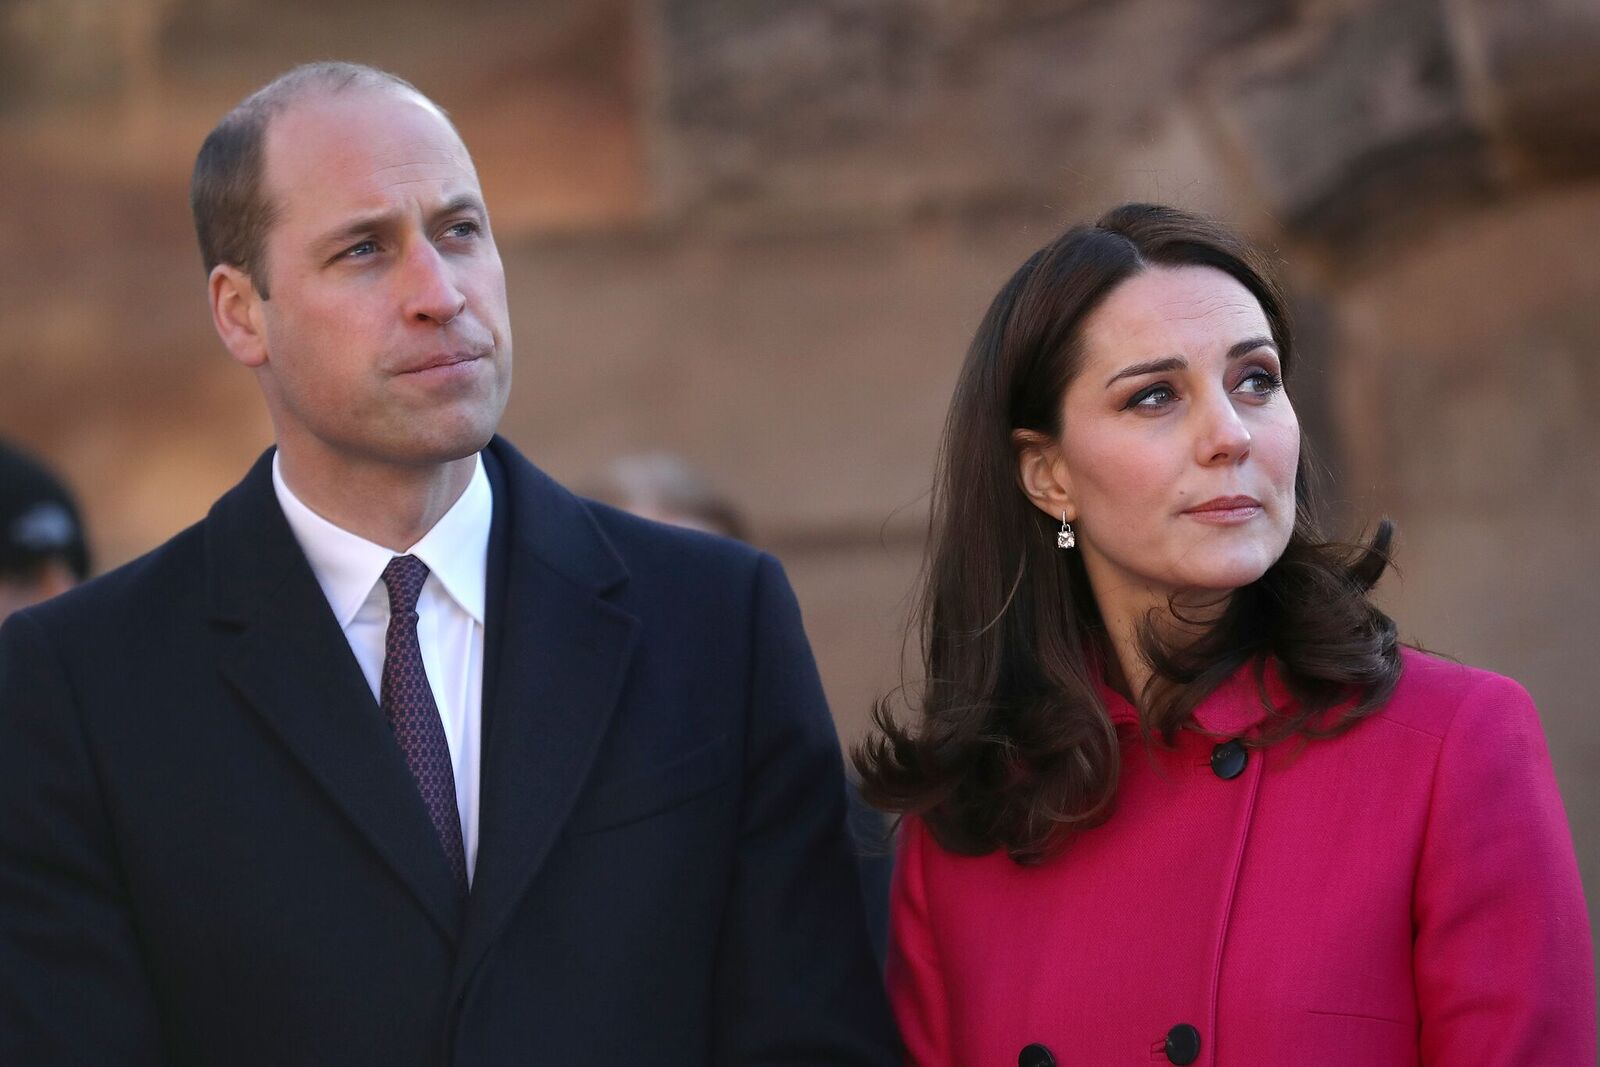 Prince William, Duke of Cambridge and Catherine, Duchess of Cambridge arrive for their visit to Coventry Cathedral during their visit to the city on January 16, 2018   Photo: Getty Images